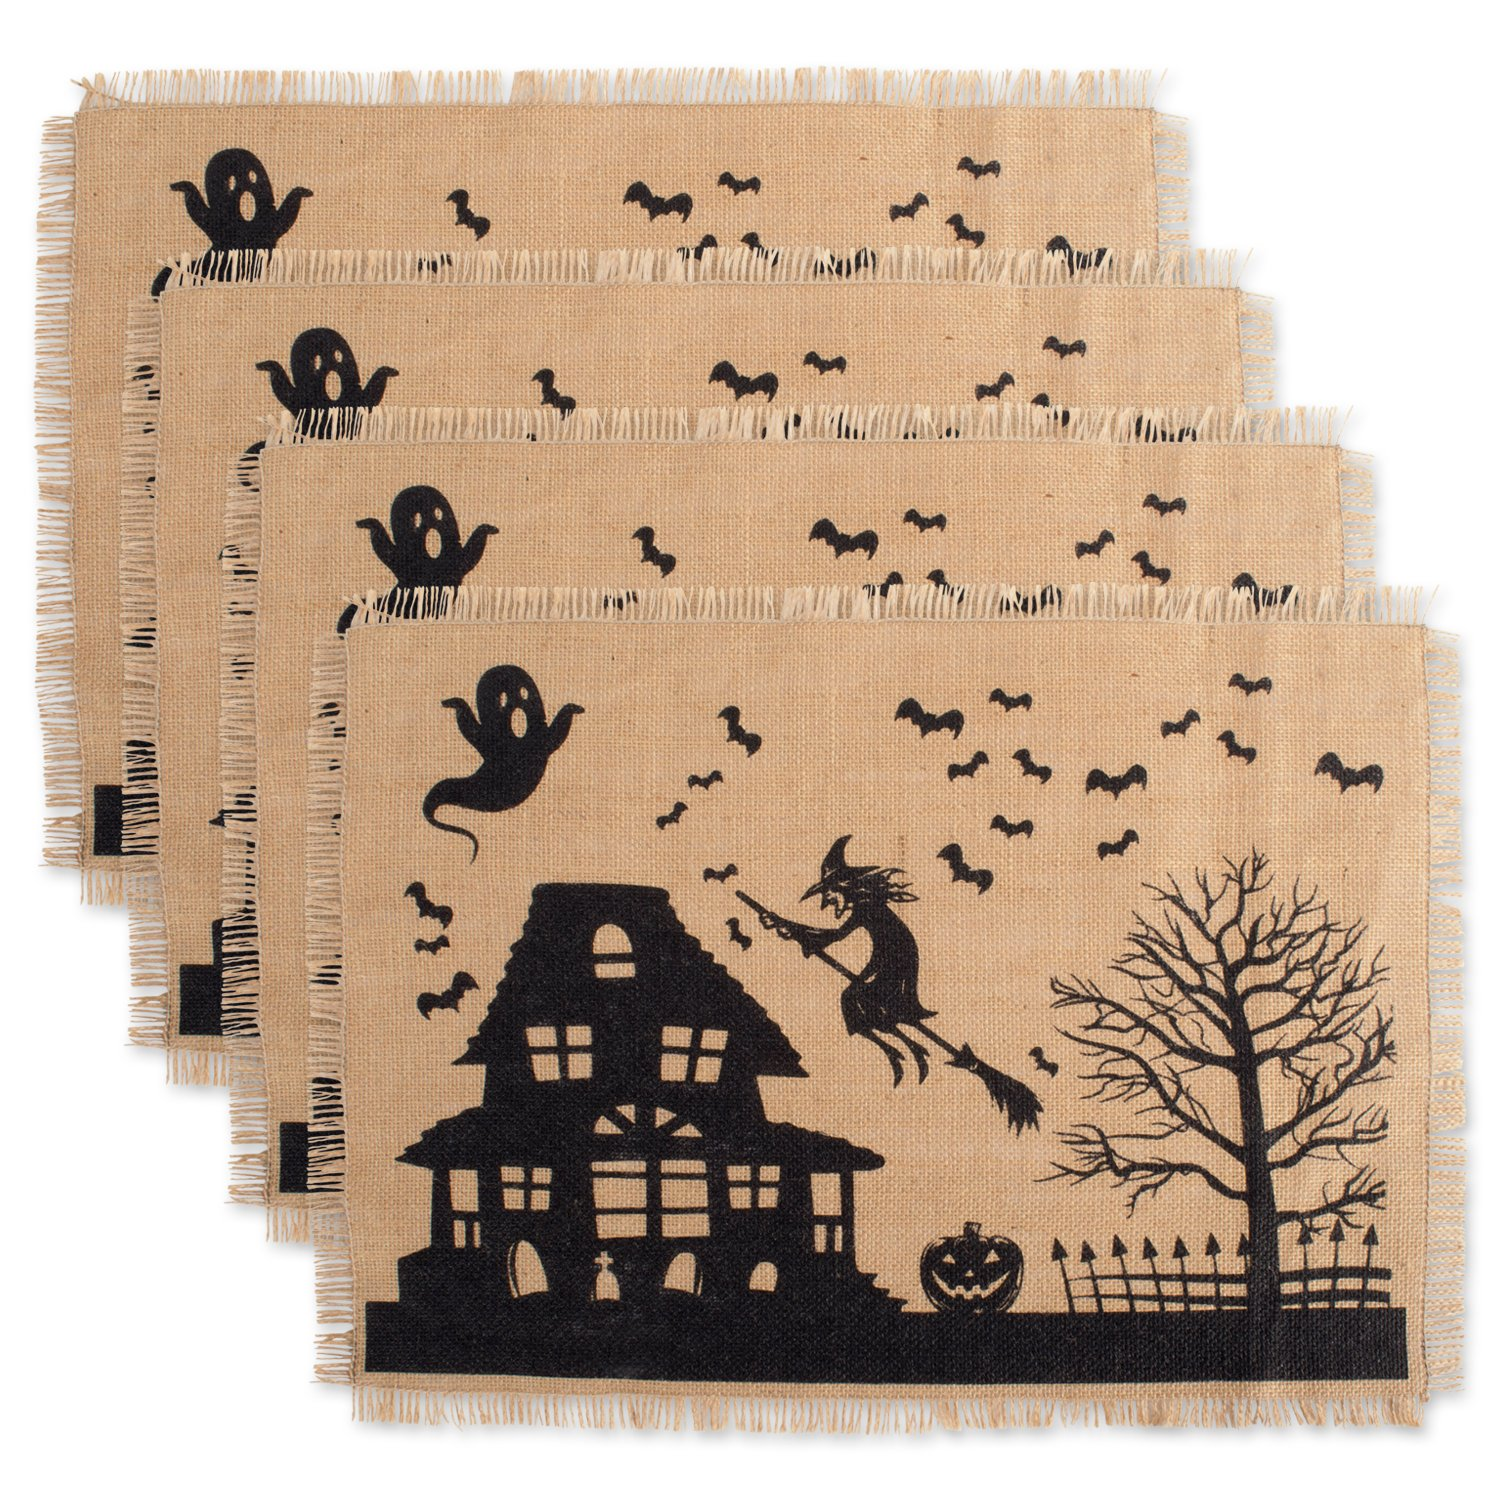 DII 100% Burlap Rustic Vintage Printed Placemat for Parties & Halloween, Set of 4, Hunted House CAMZ37628